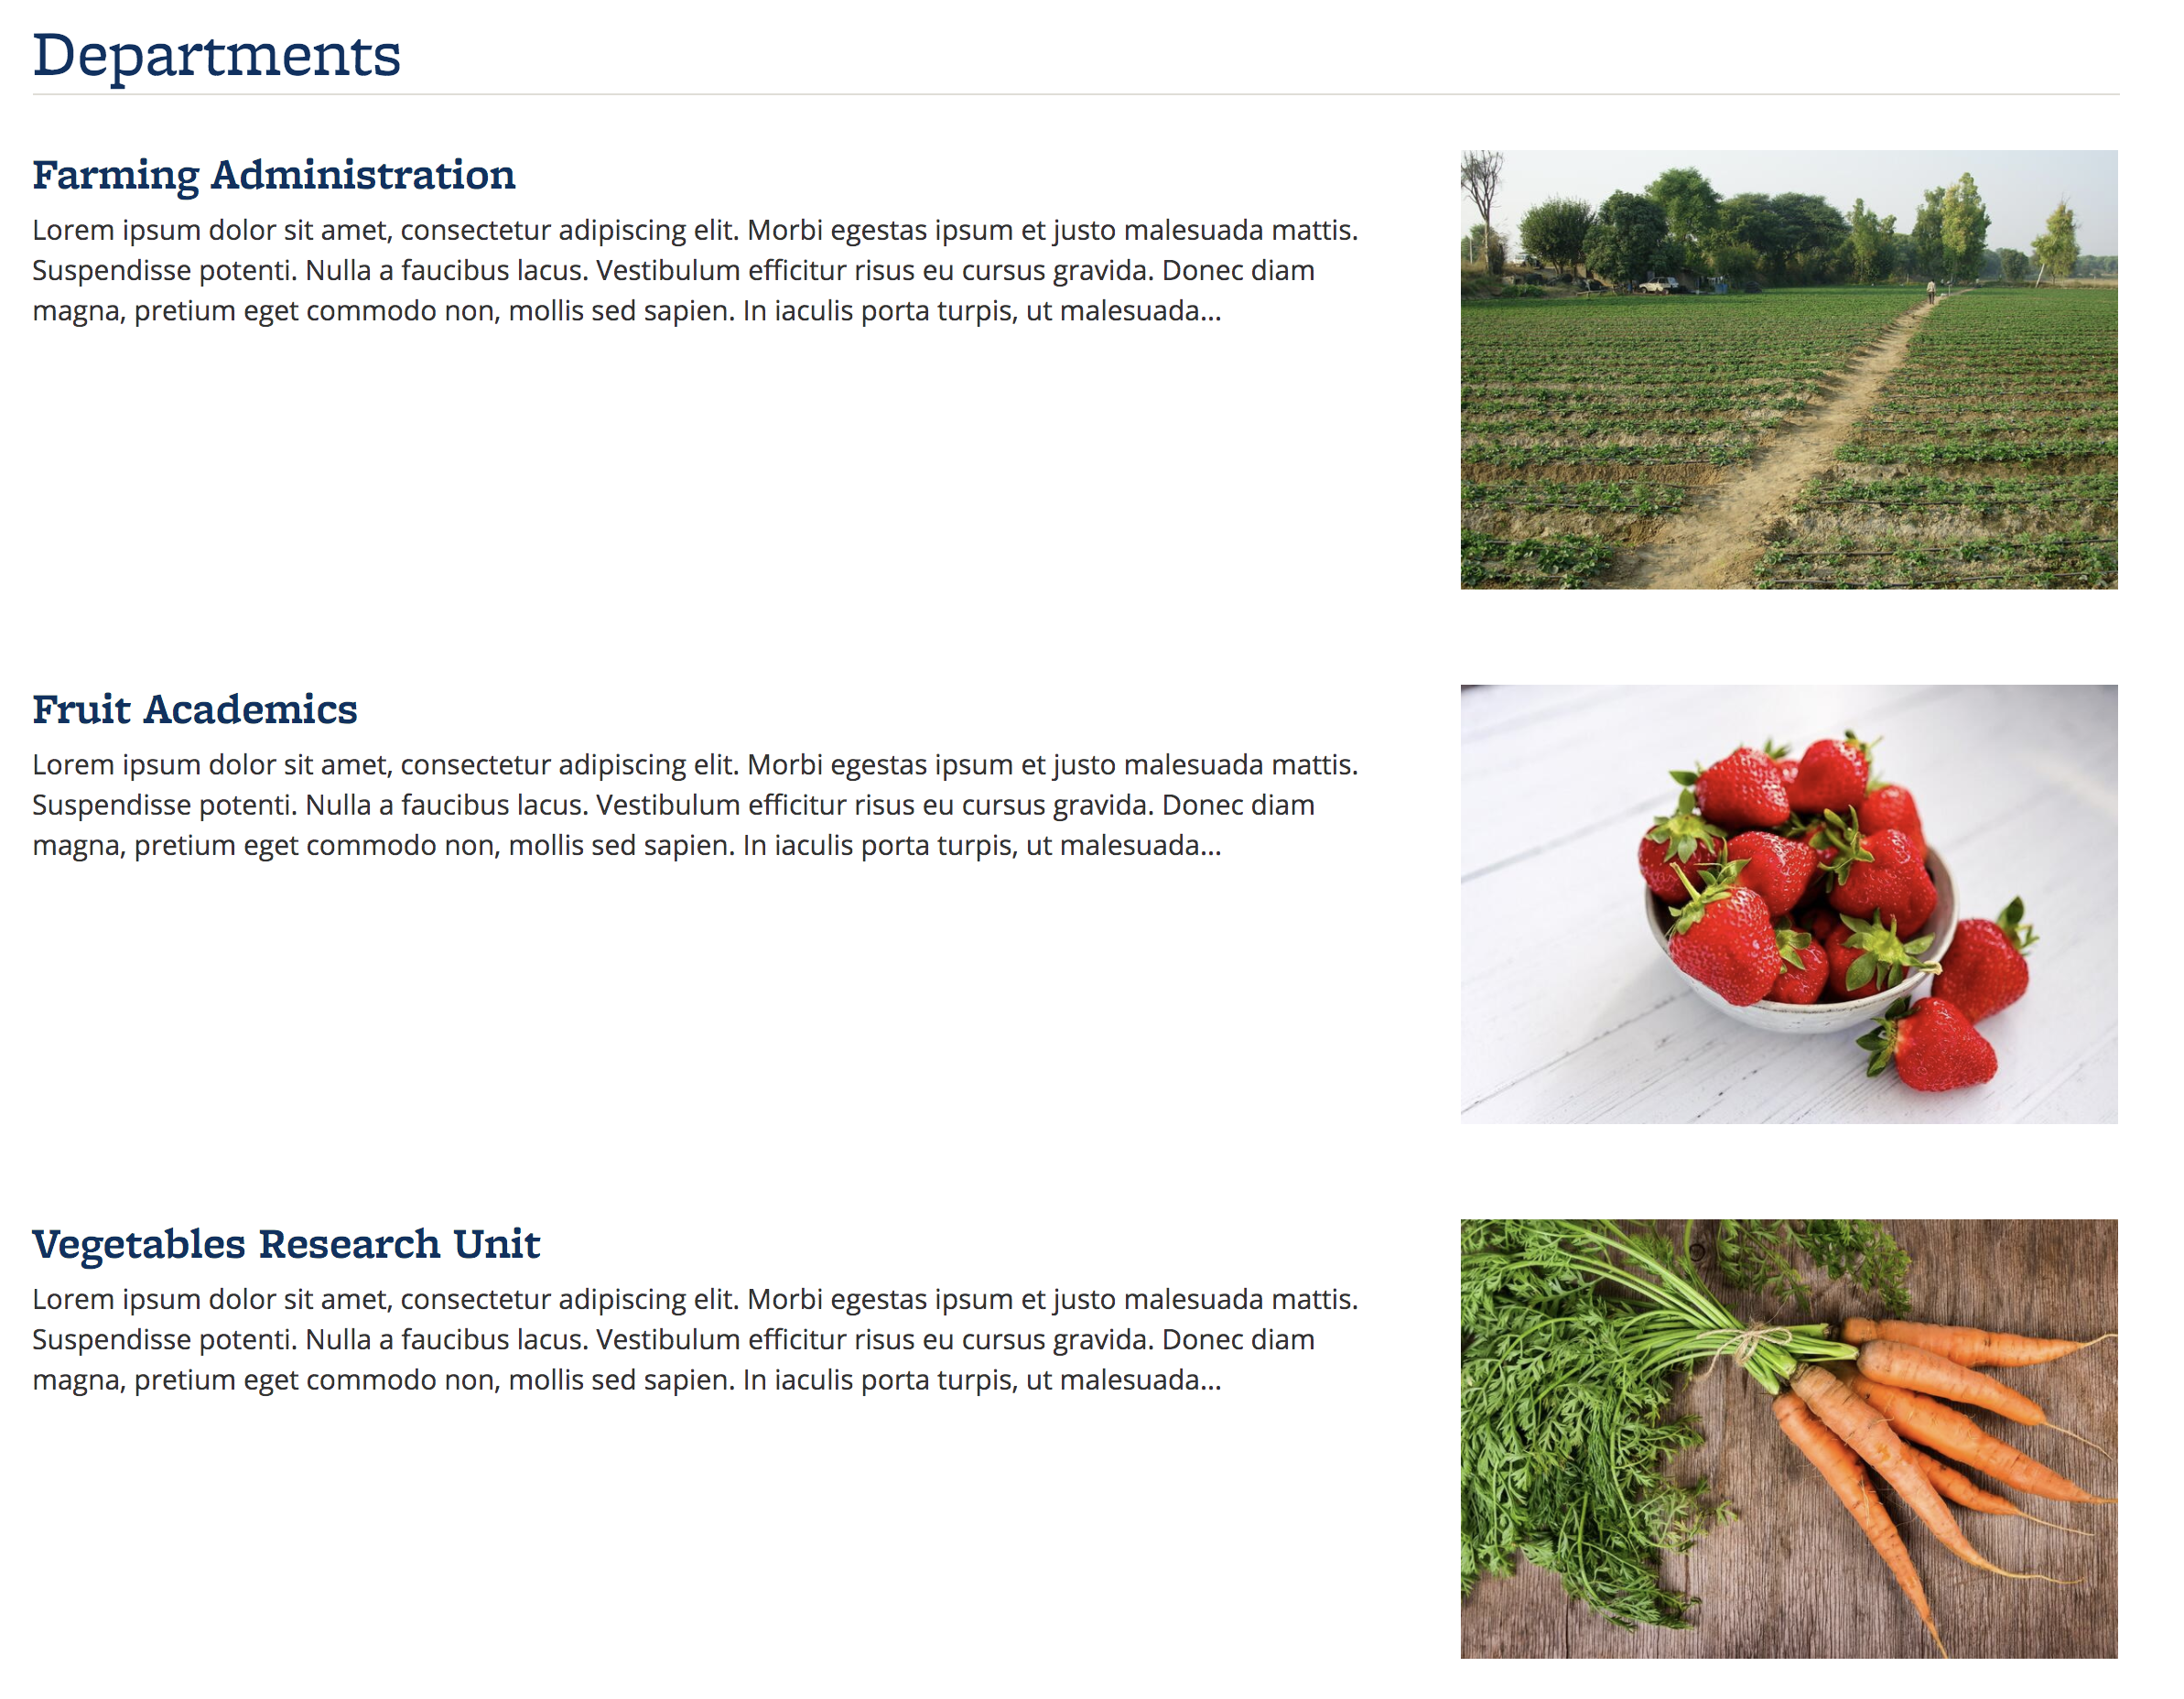 Screenshot of Departments content, with featured images